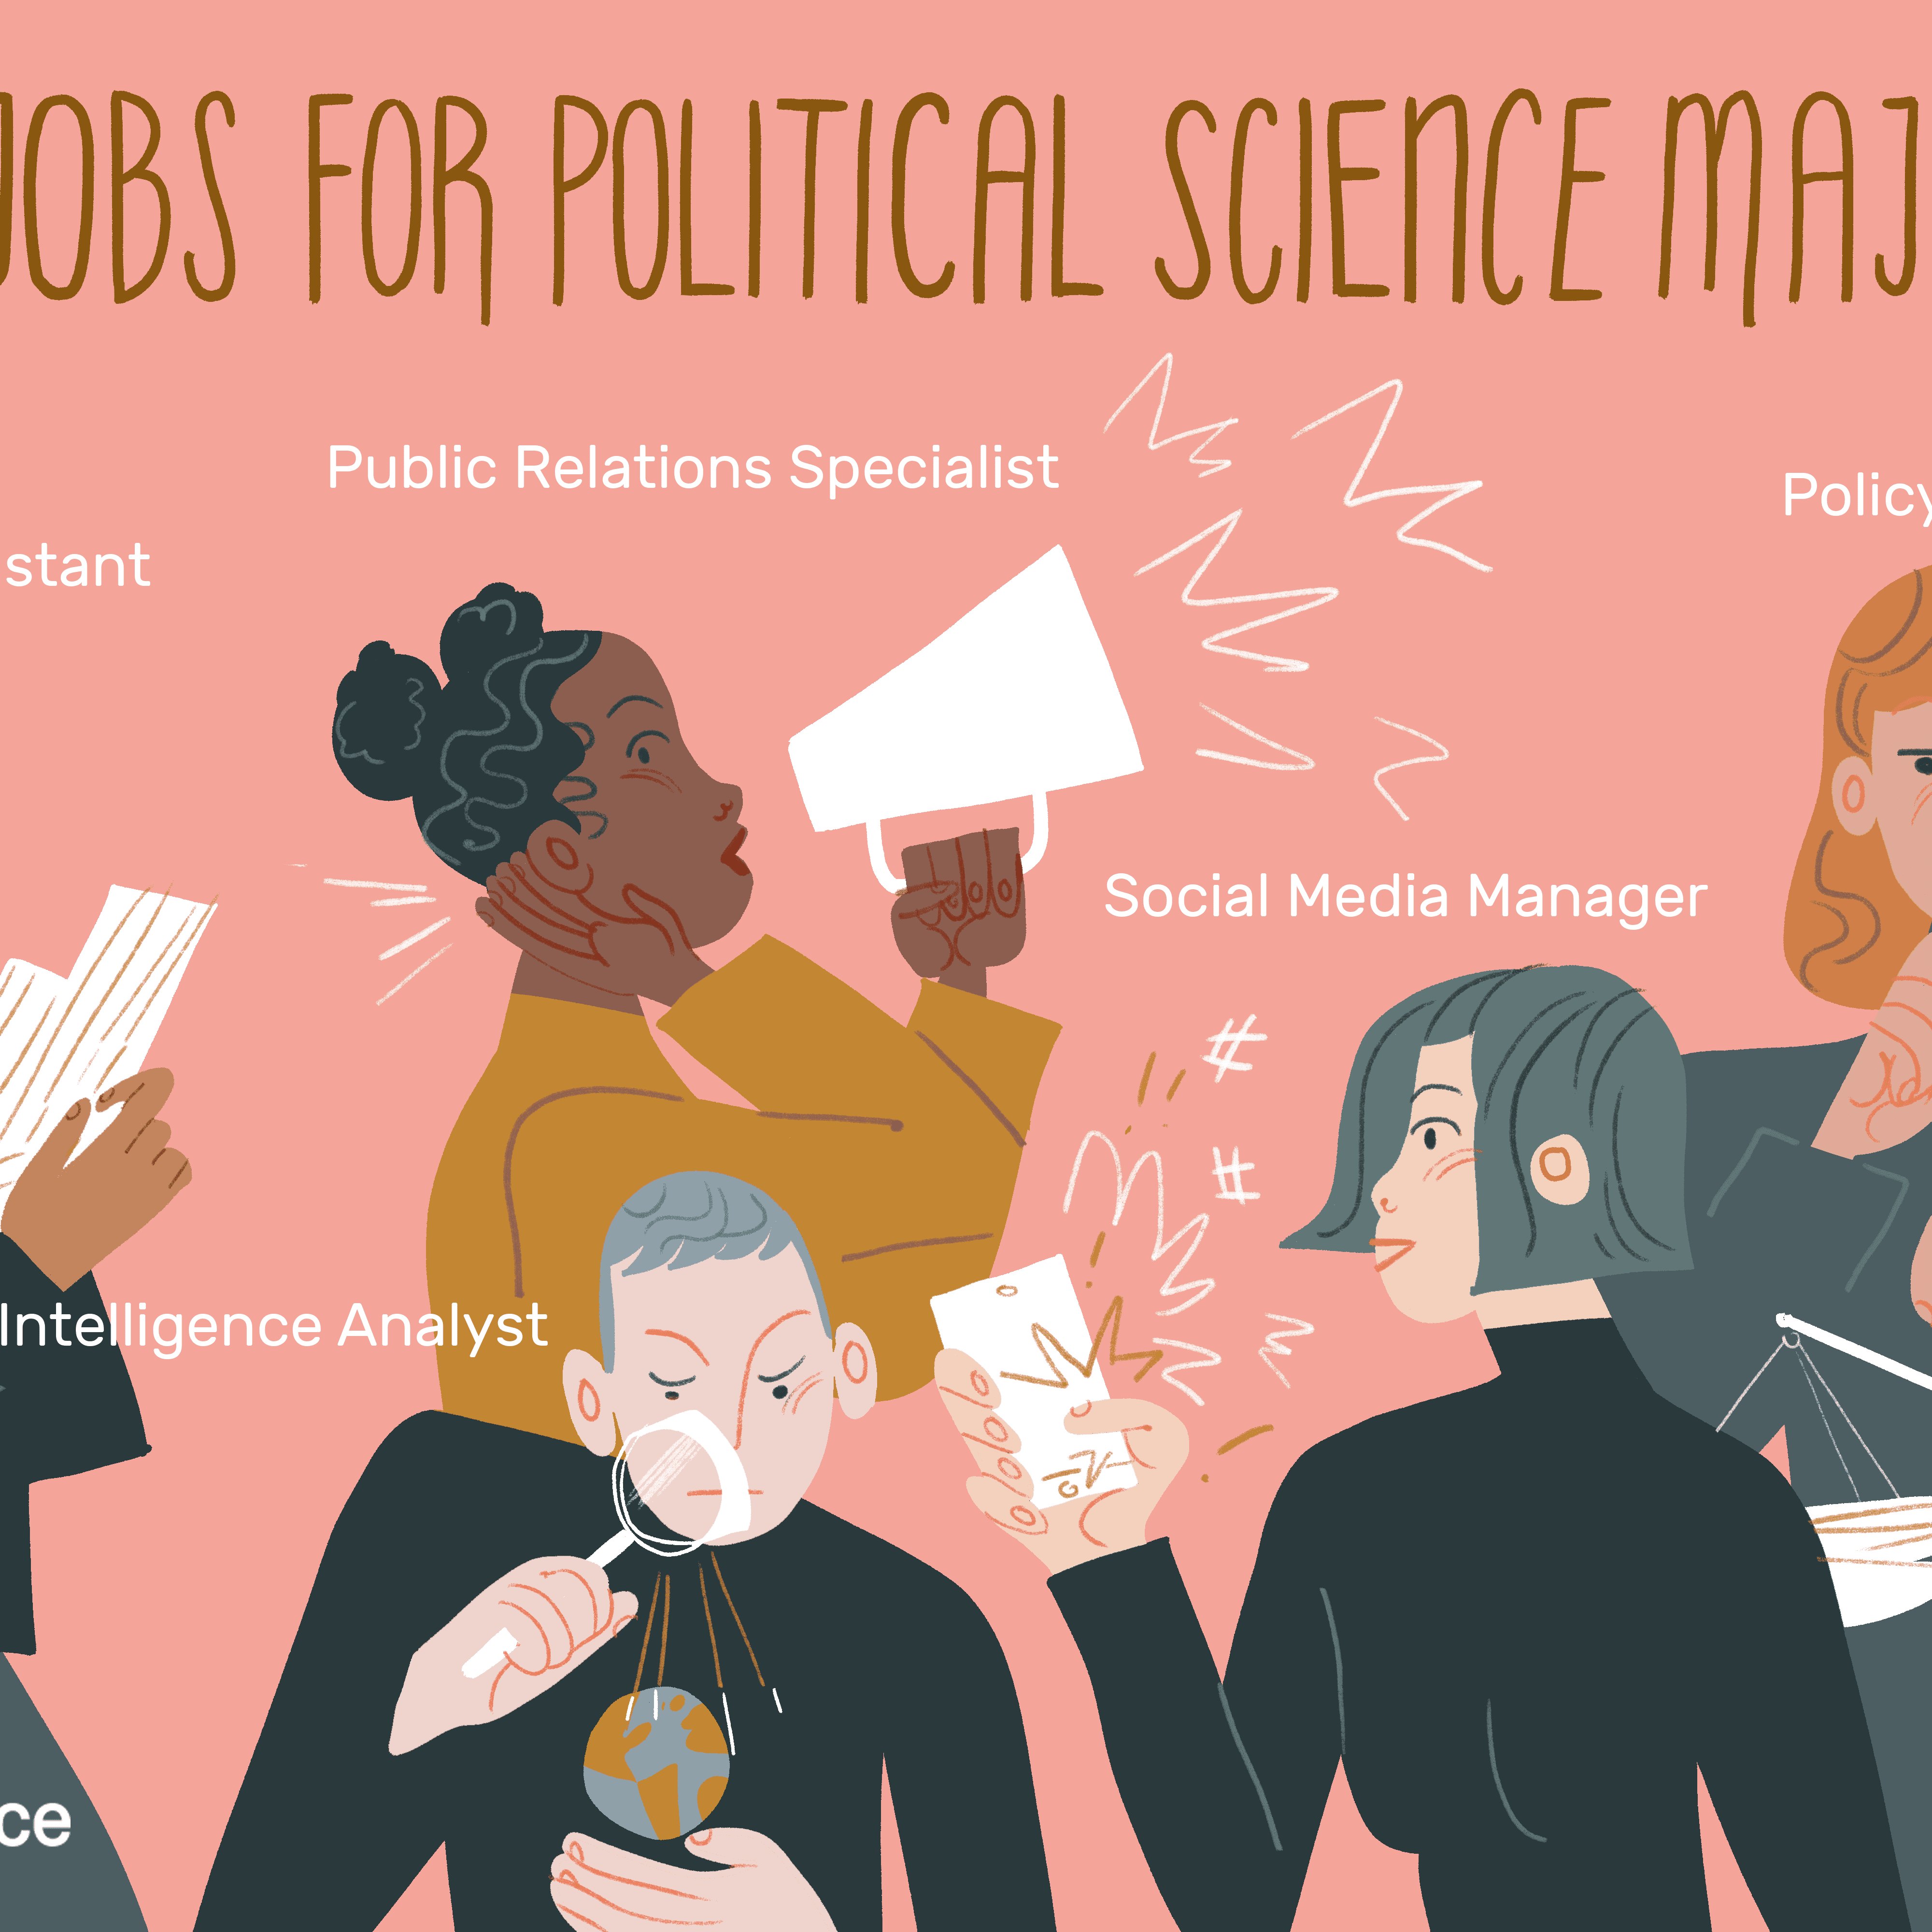 10 Great Jobs for Political Science Majors